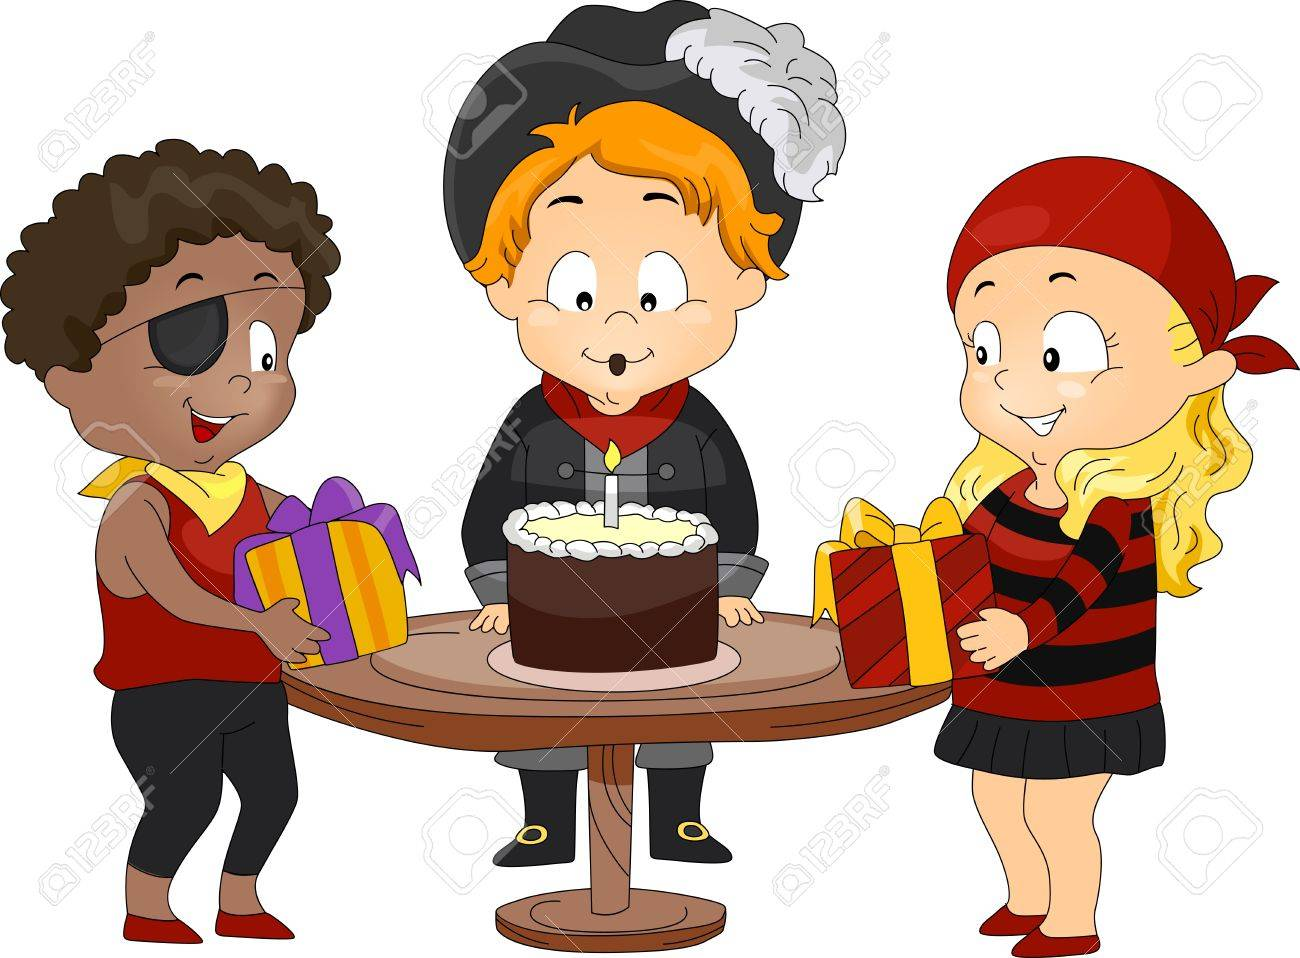 Illustration of Kids in a Birthday Party Dressed as Pirates Stock Illustration - 9307271